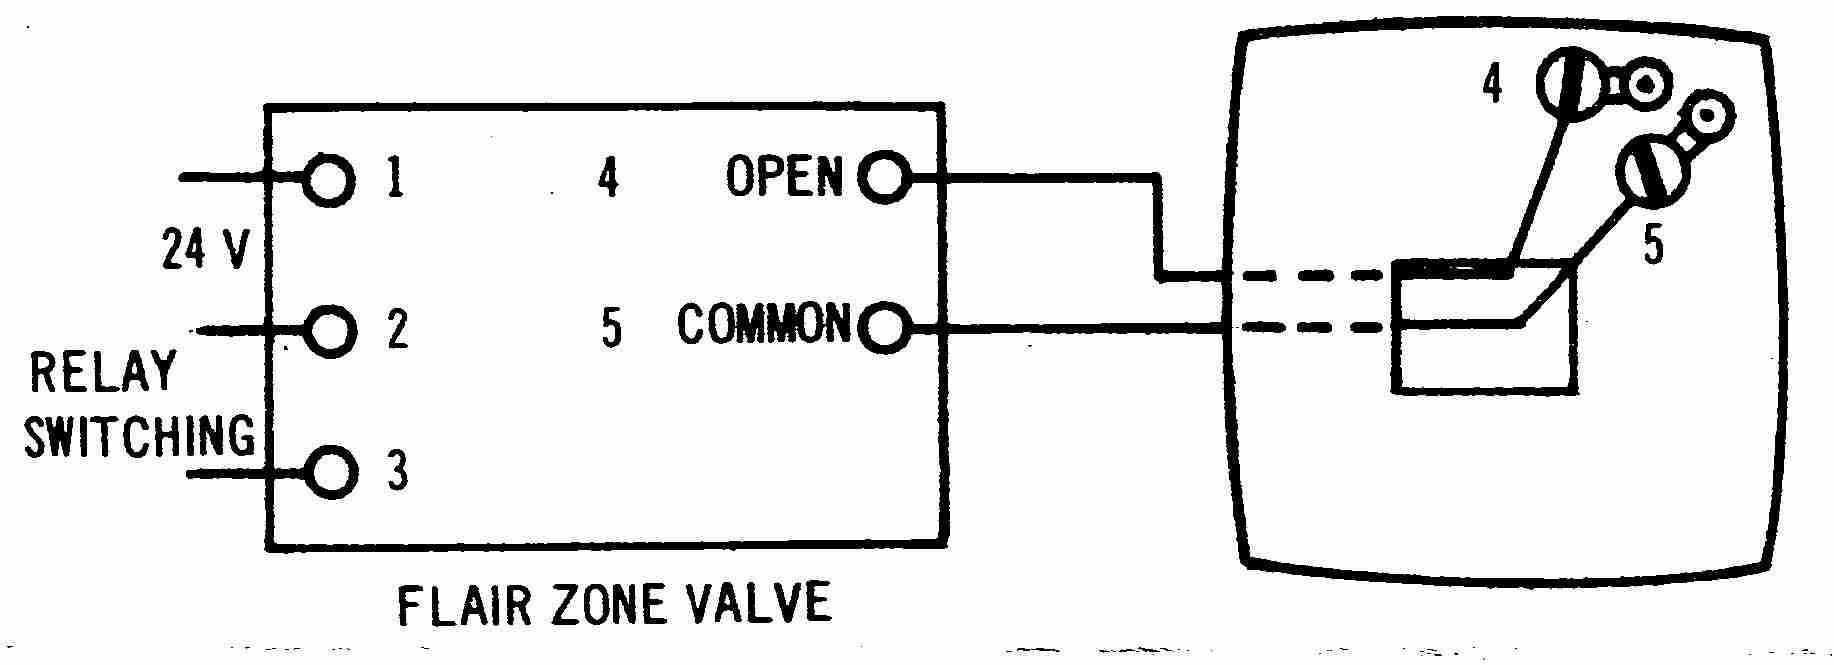 Flair2w_001_DJFc1 room thermostat wiring diagrams for hvac systems heater thermostat wiring diagram at webbmarketing.co